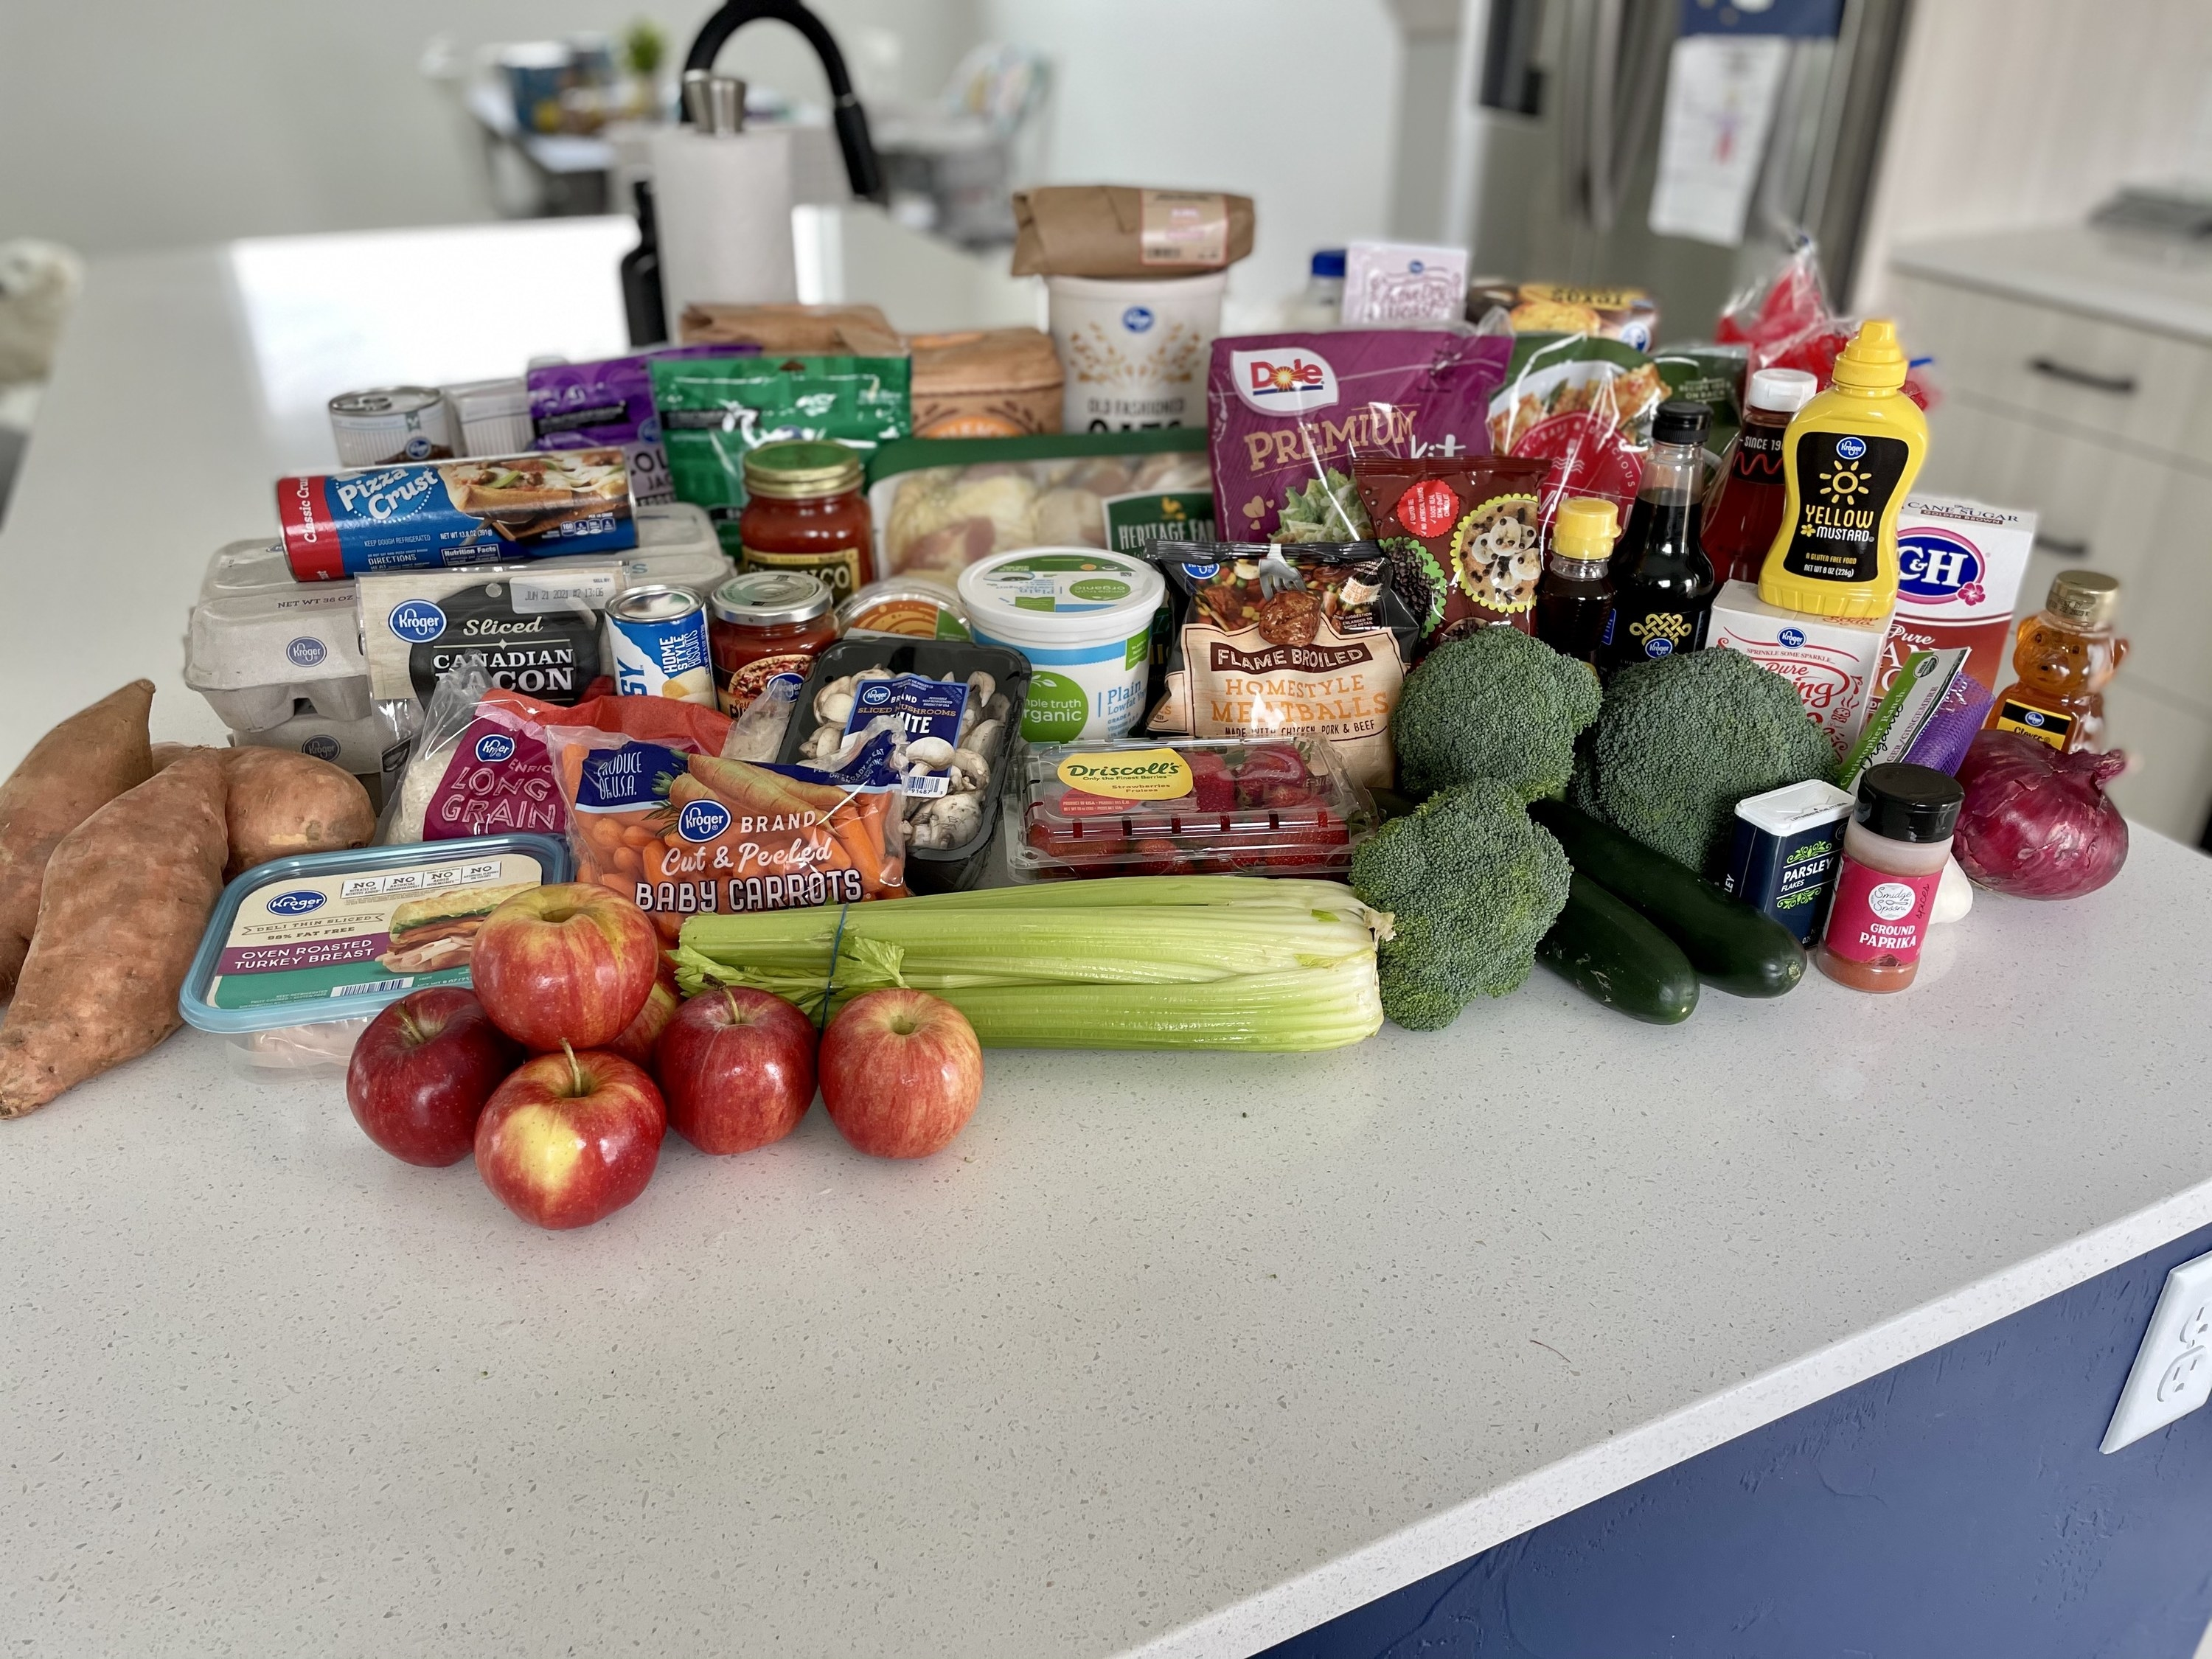 Groceries laid out on the counter